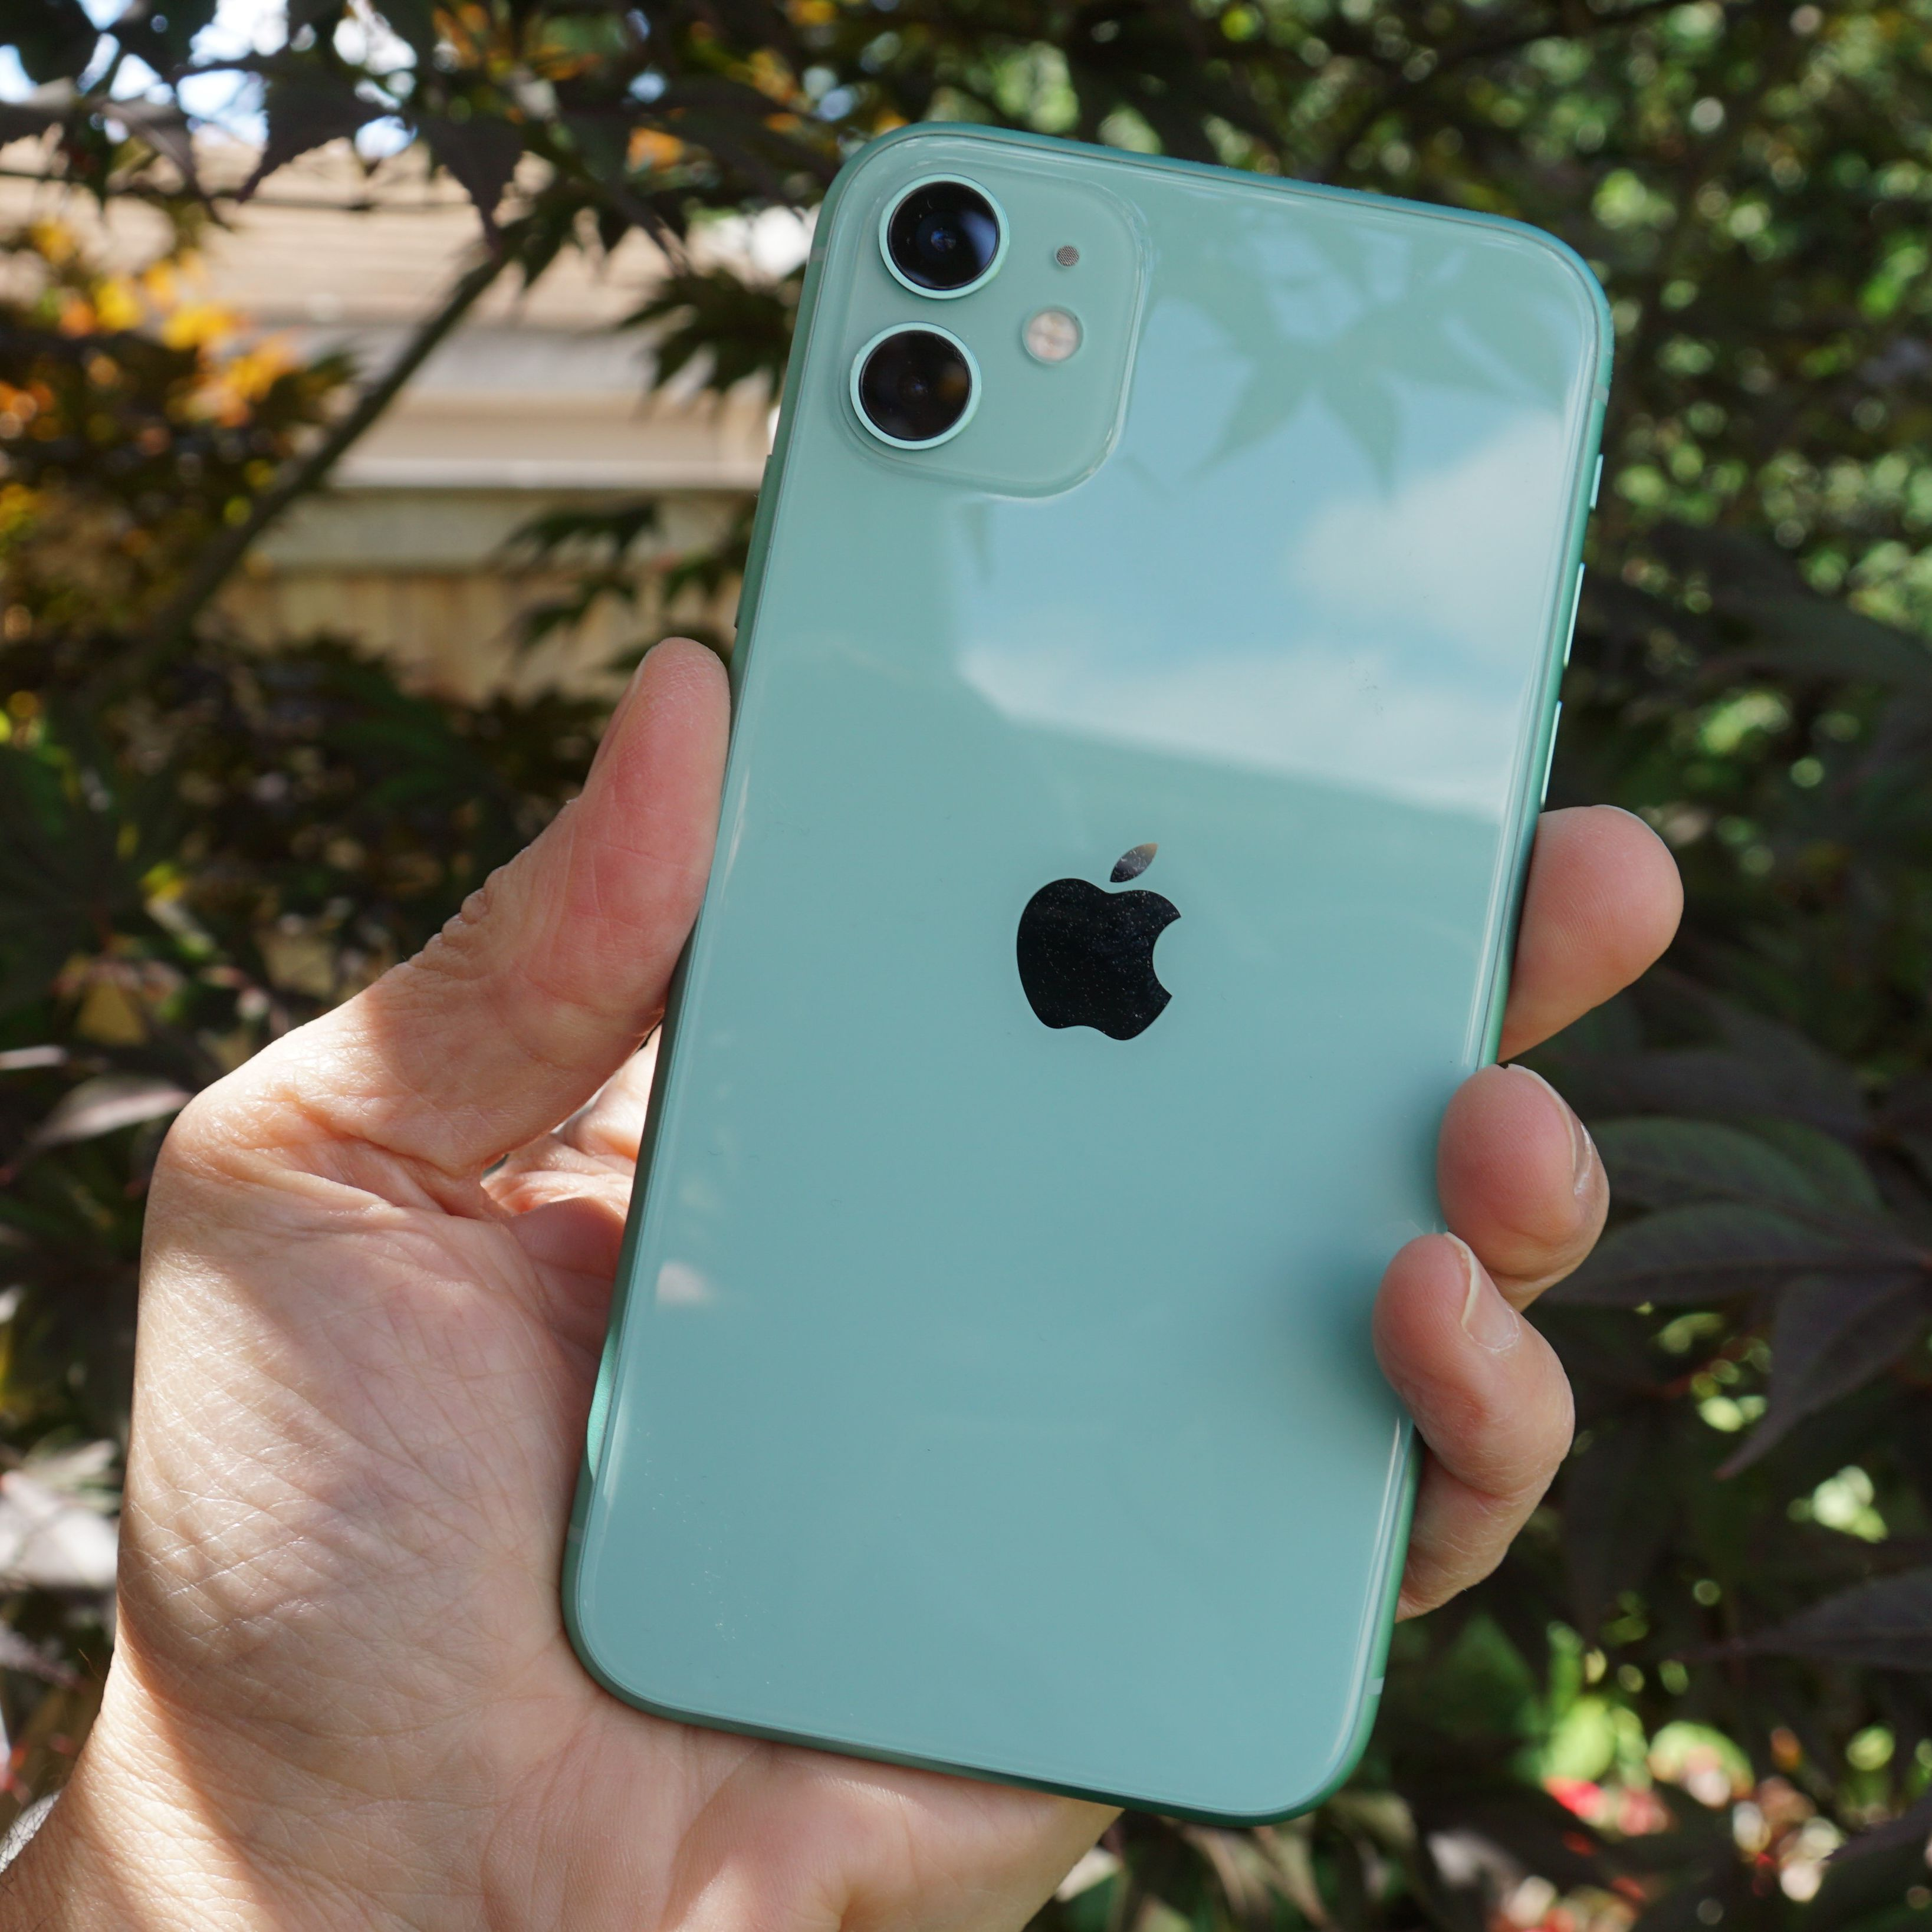 Apple iPhone 11: The Review